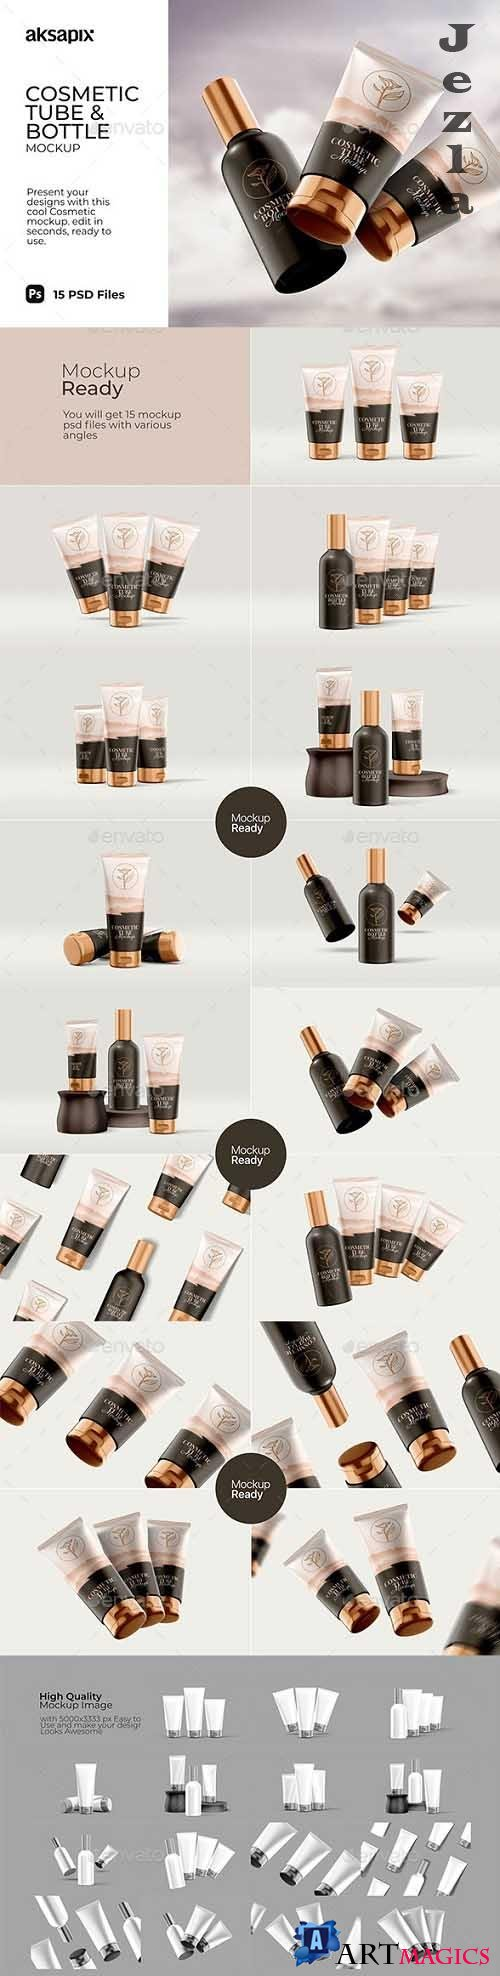 GraphicRiver - Cosmetic Tube & Bottle - Mockup 29810114